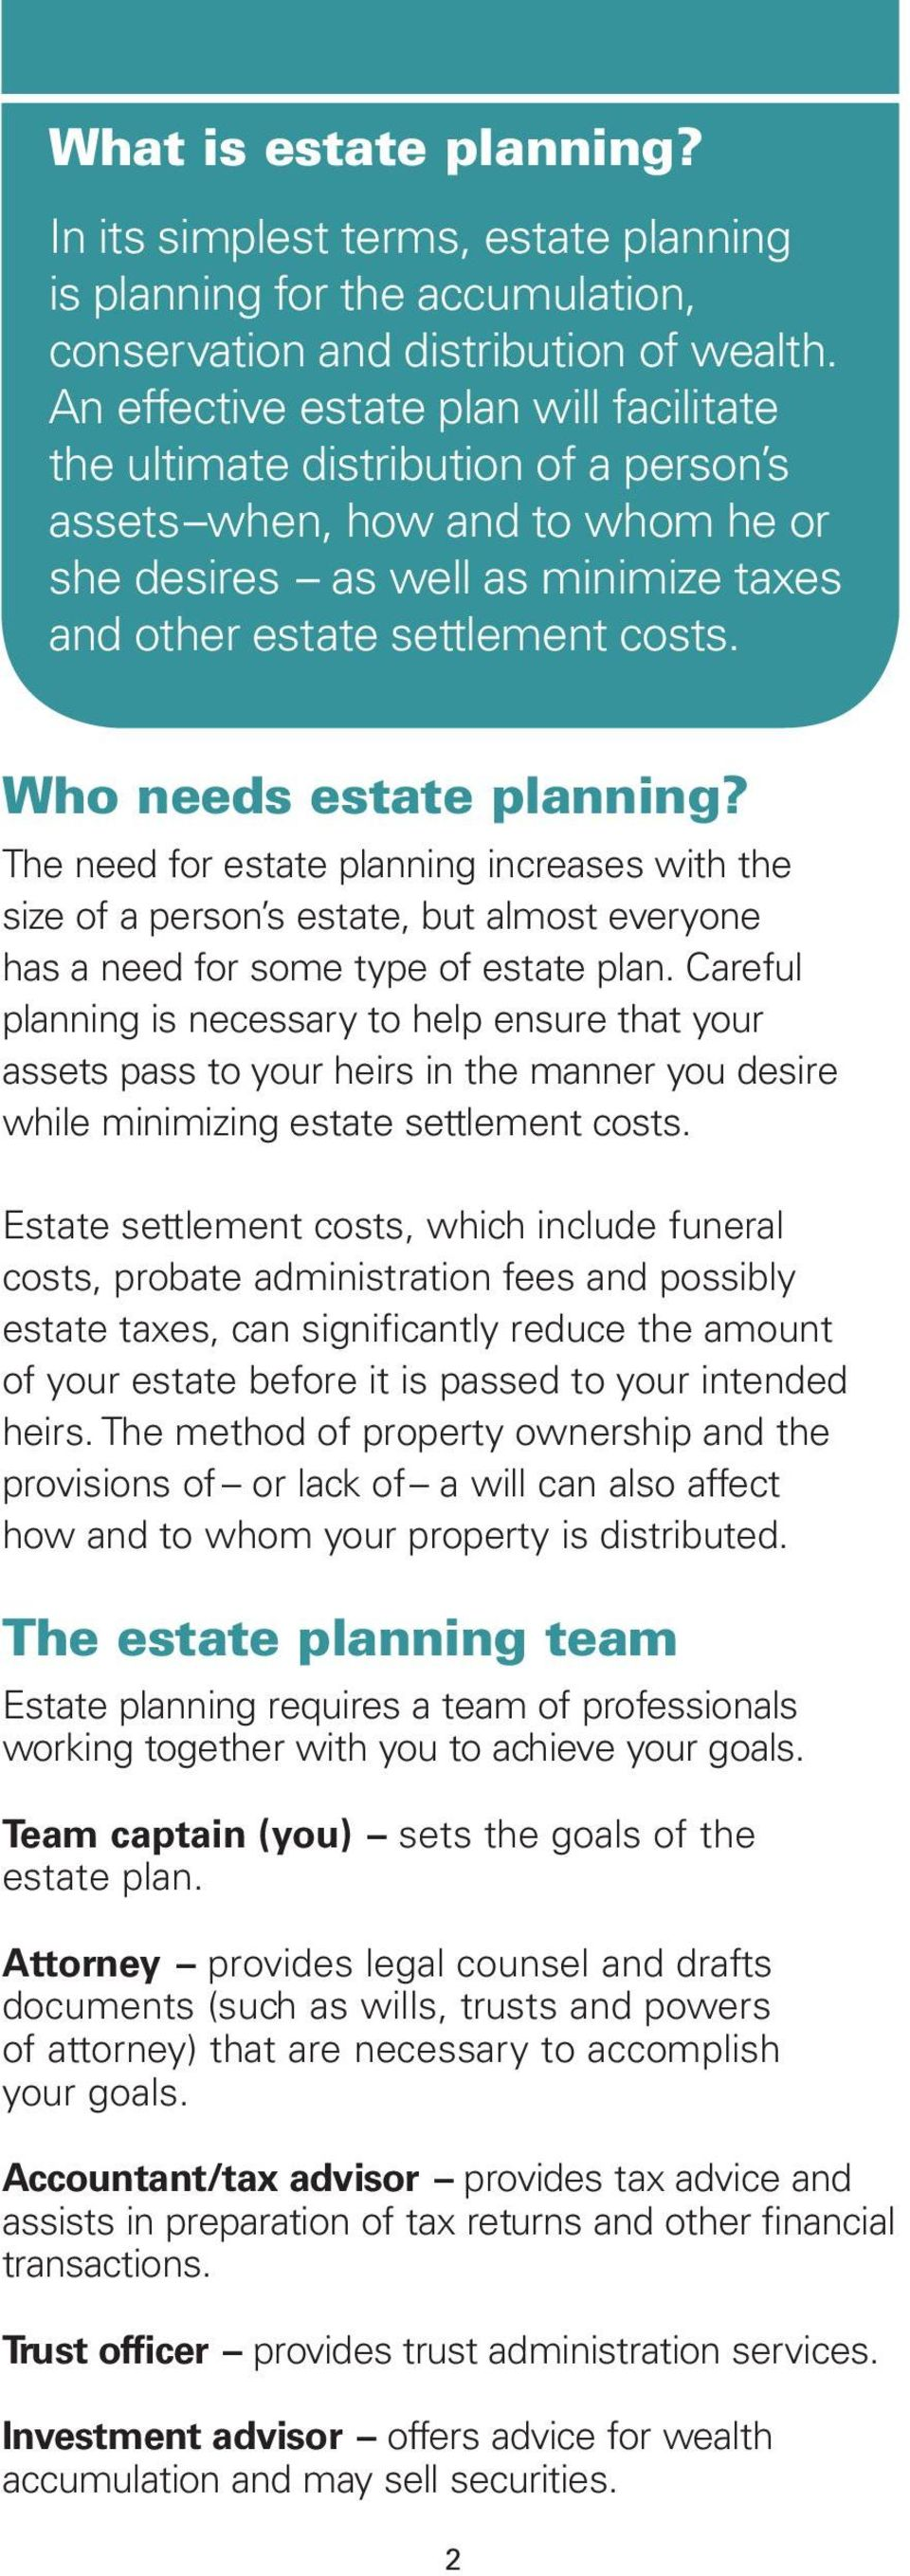 Who needs estate planning? The need for estate planning increases with the size of a person s estate, but almost everyone has a need for some type of estate plan.